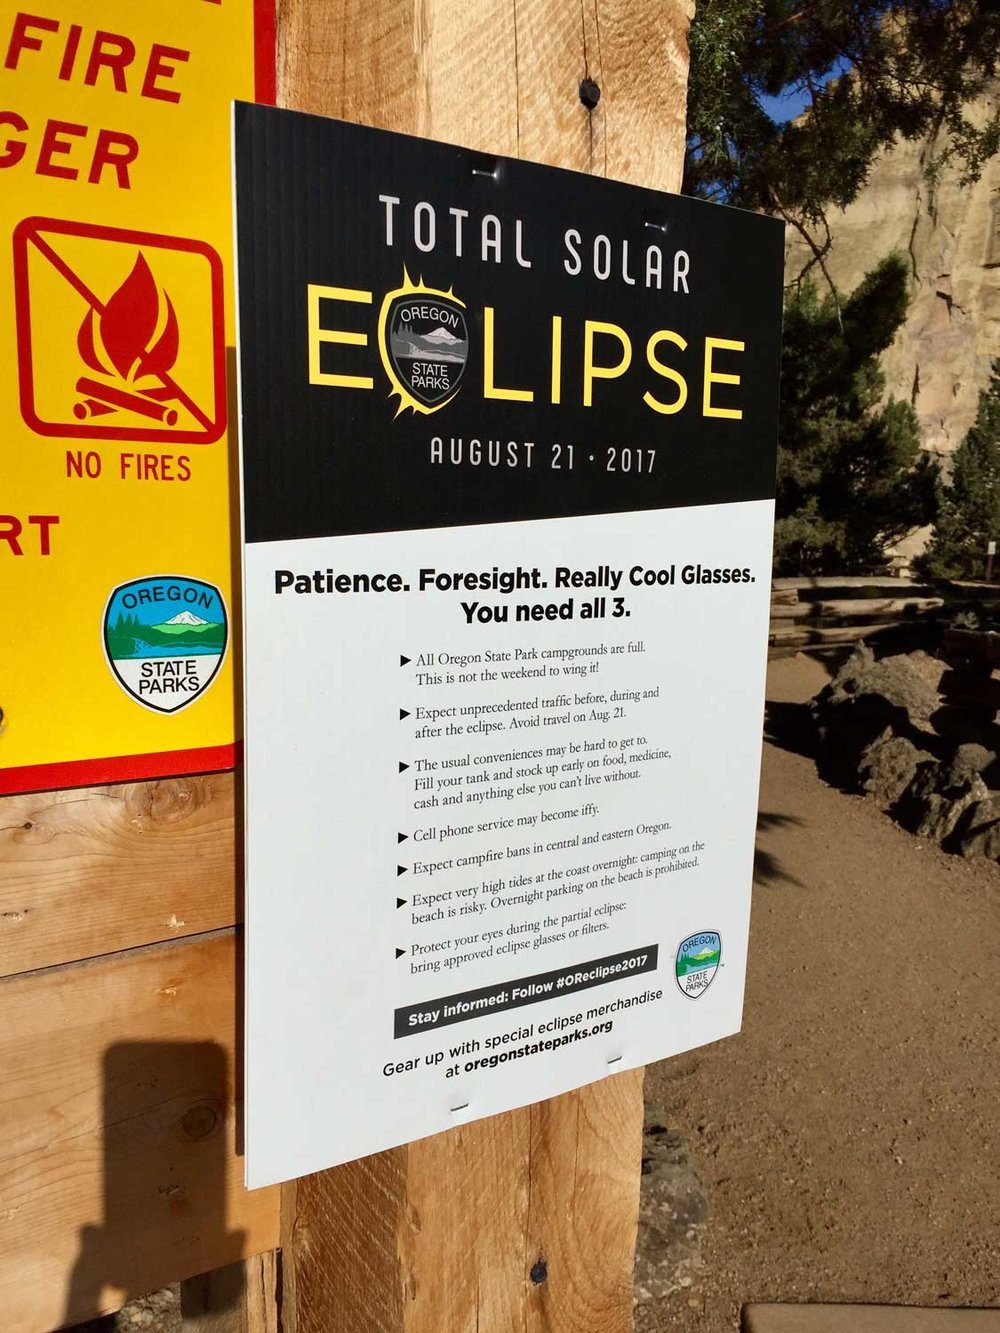 Total Solar Eclipse Sign at Smith Rock State Park